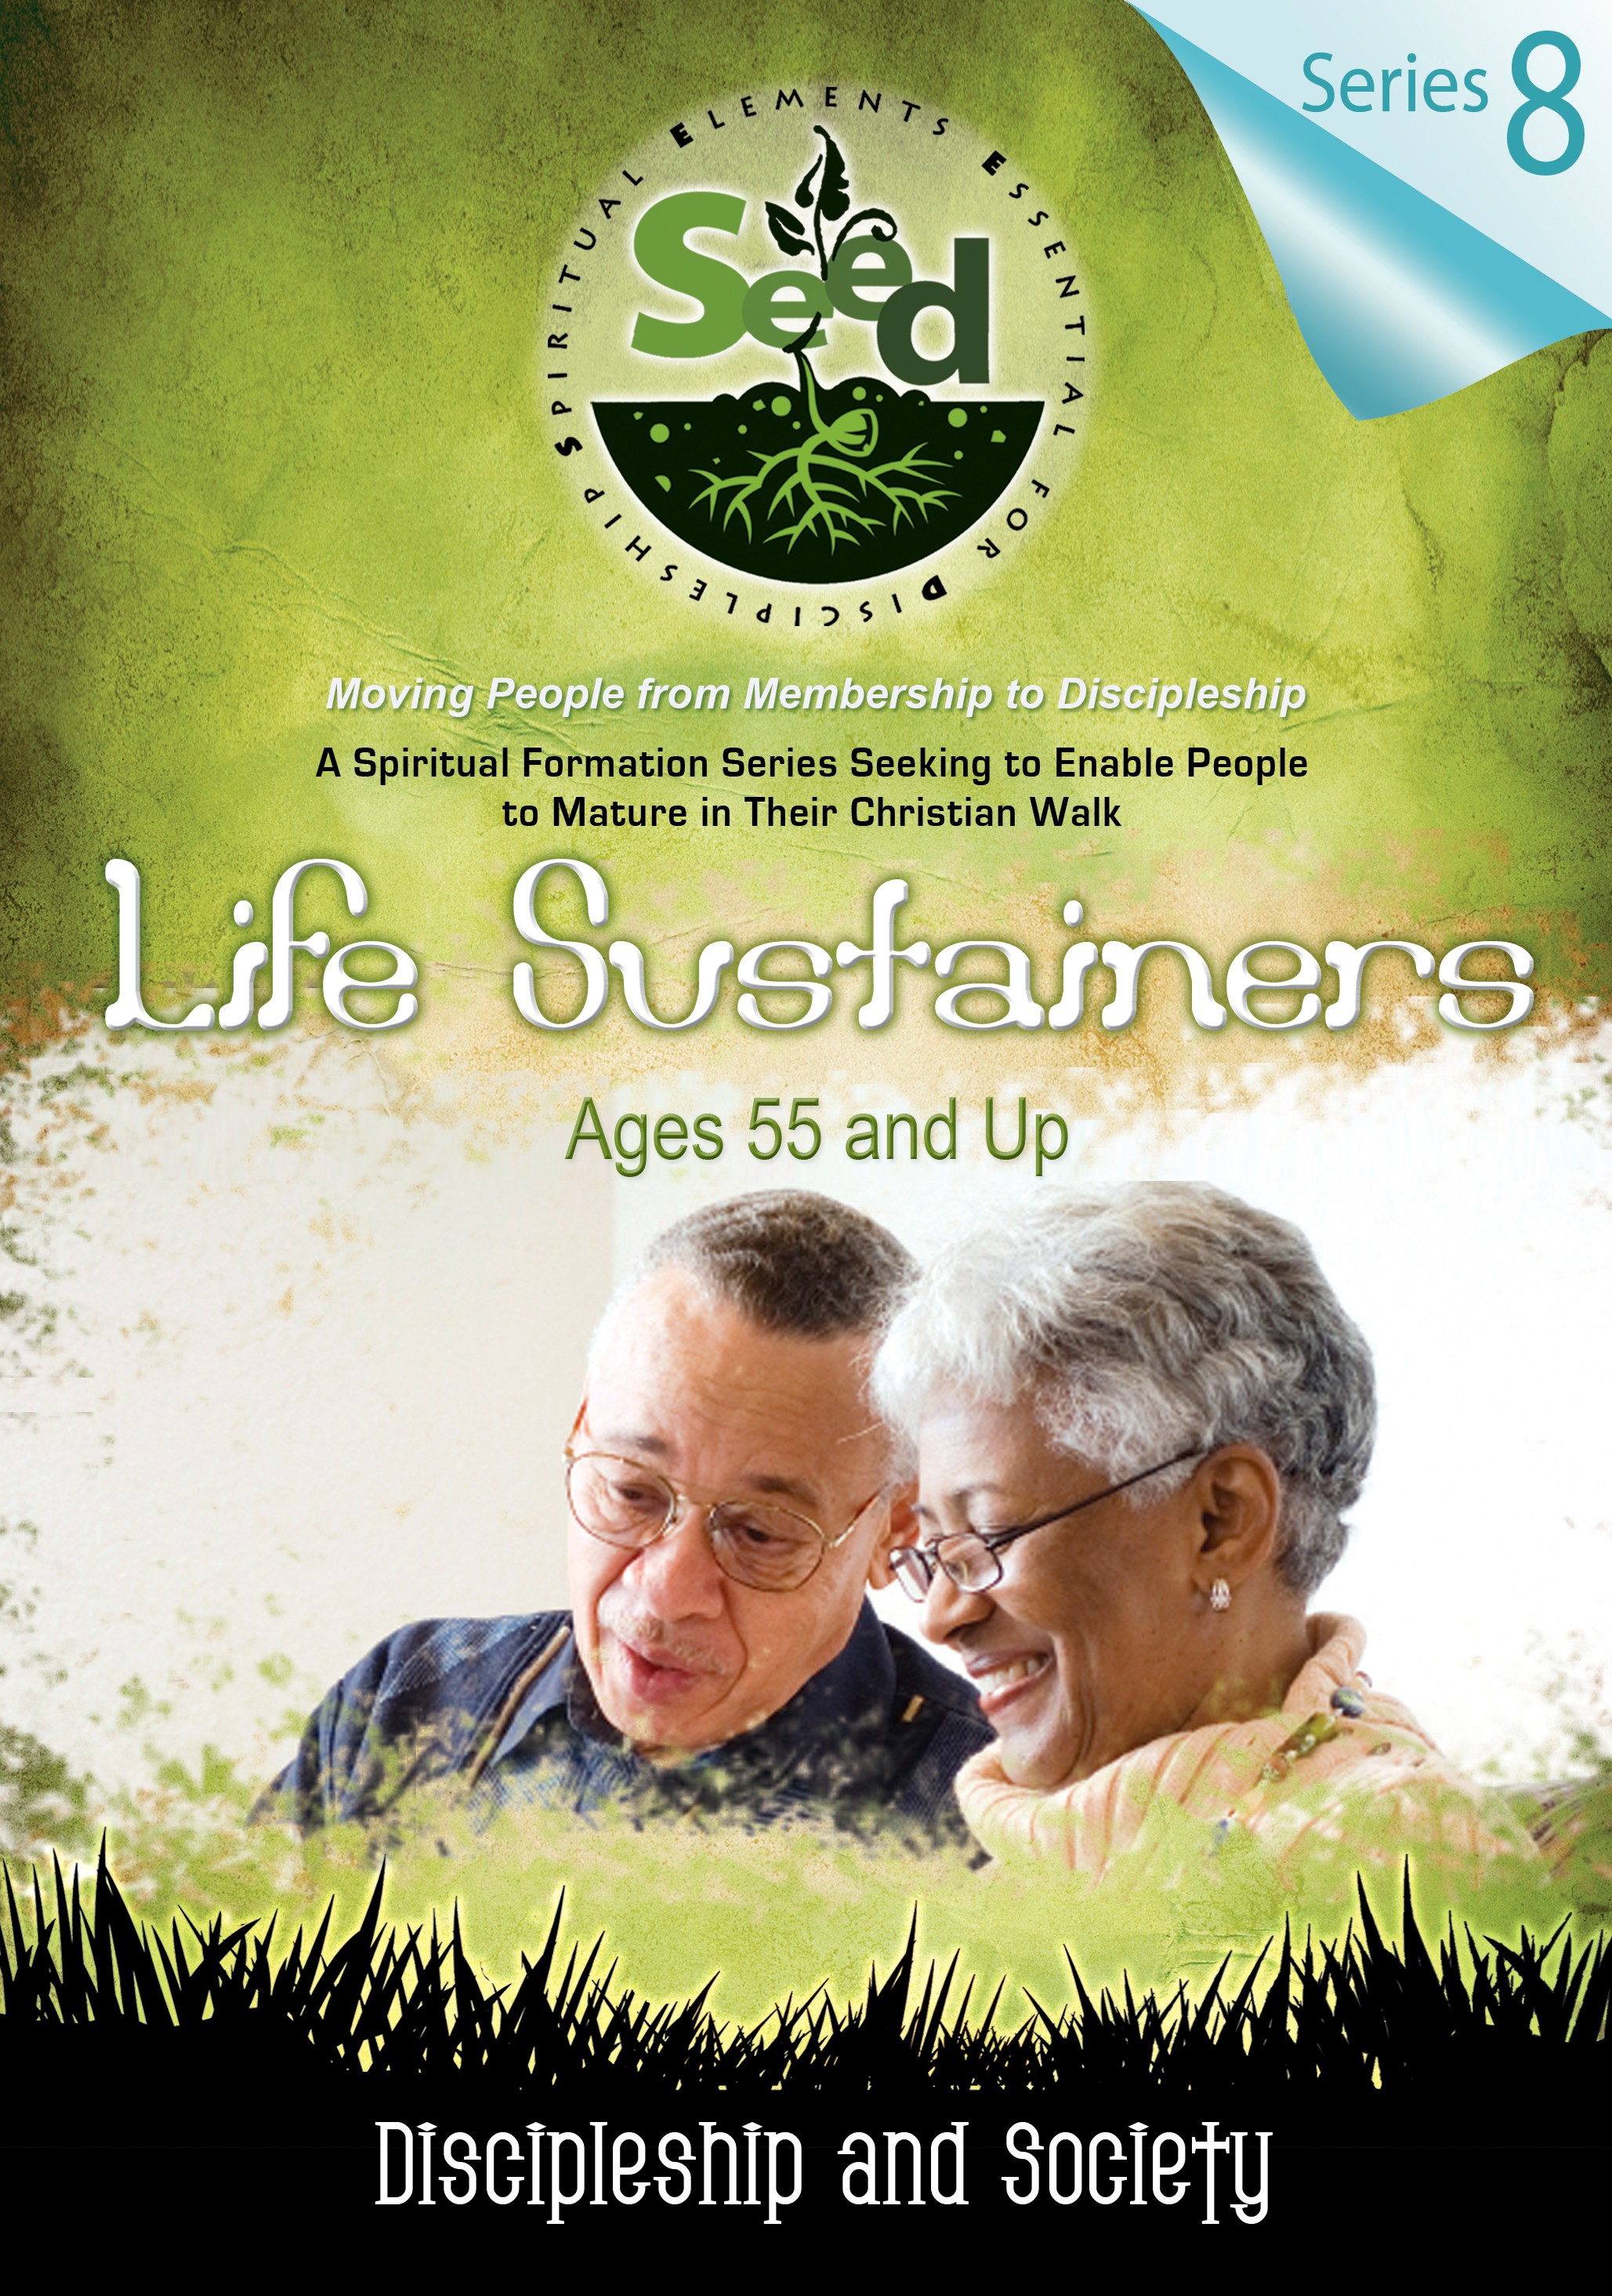 SEED Life Sustainers (Ages 55 and Up): Series 8: Discipleship and Society